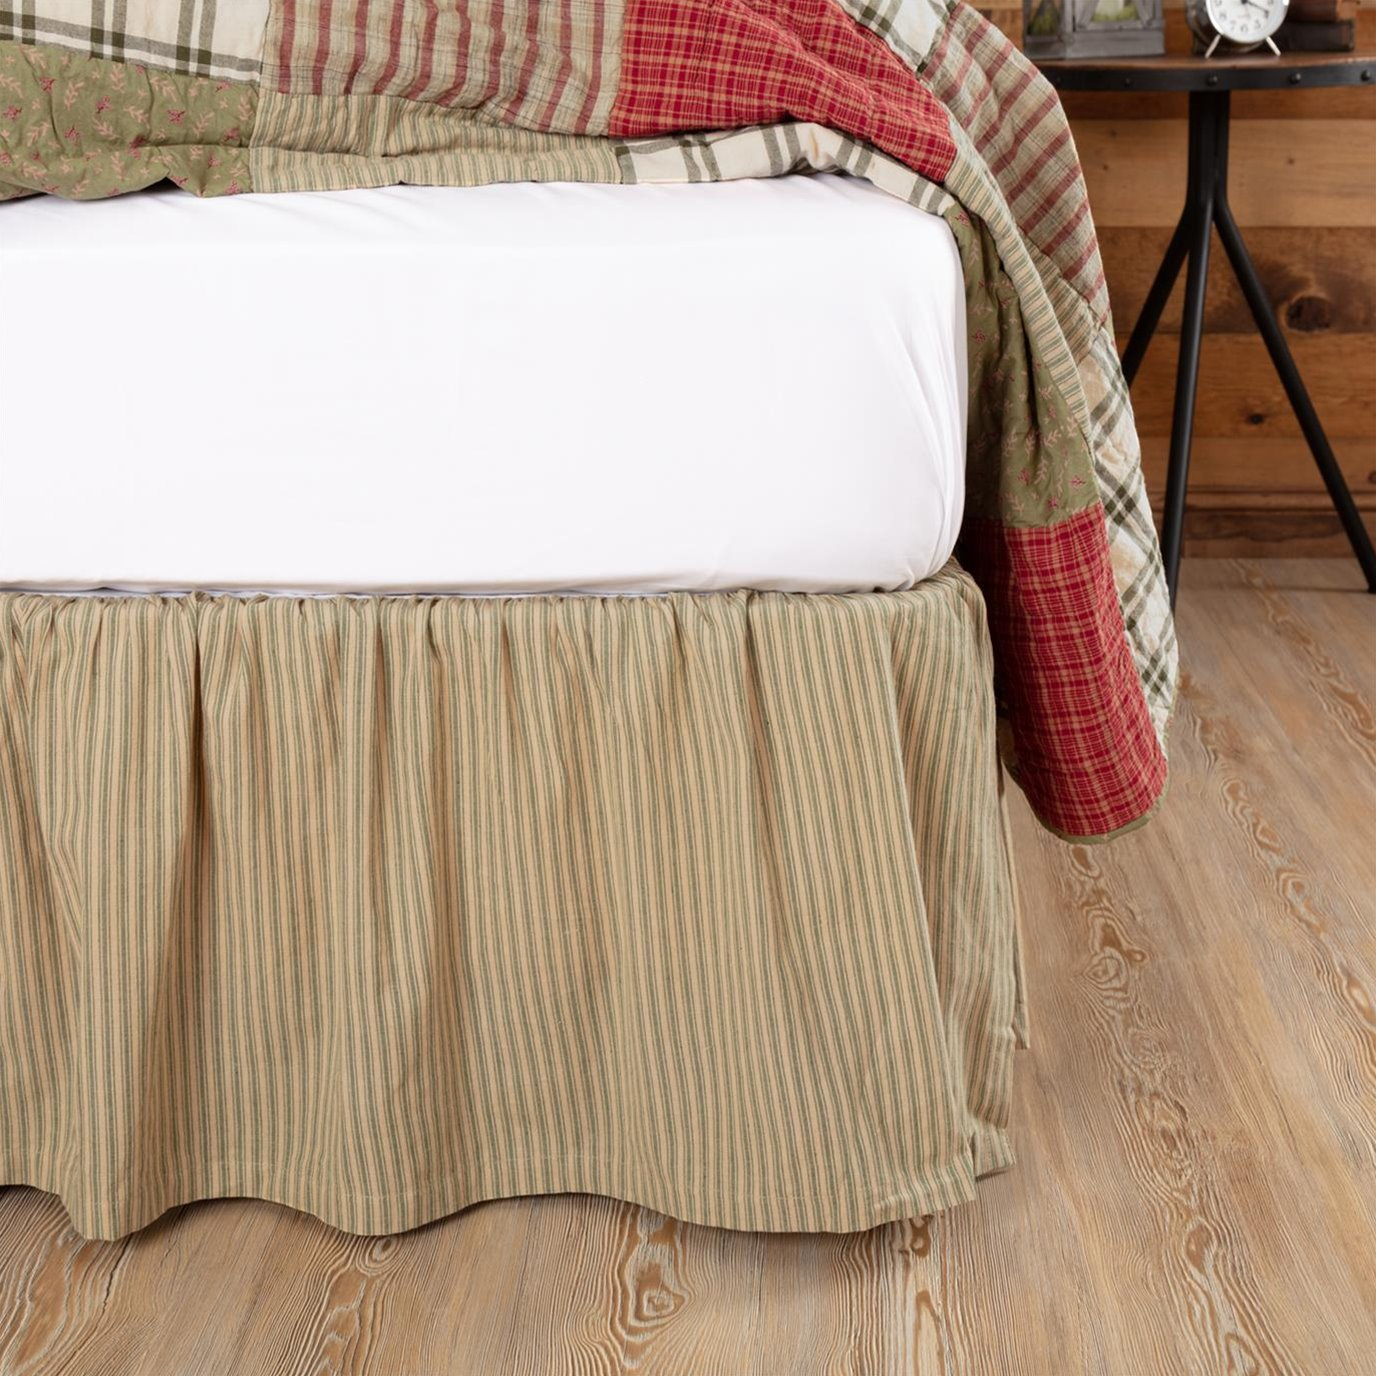 Prairie Winds Green Ticking Stripe King Bed Skirt 78x80x16